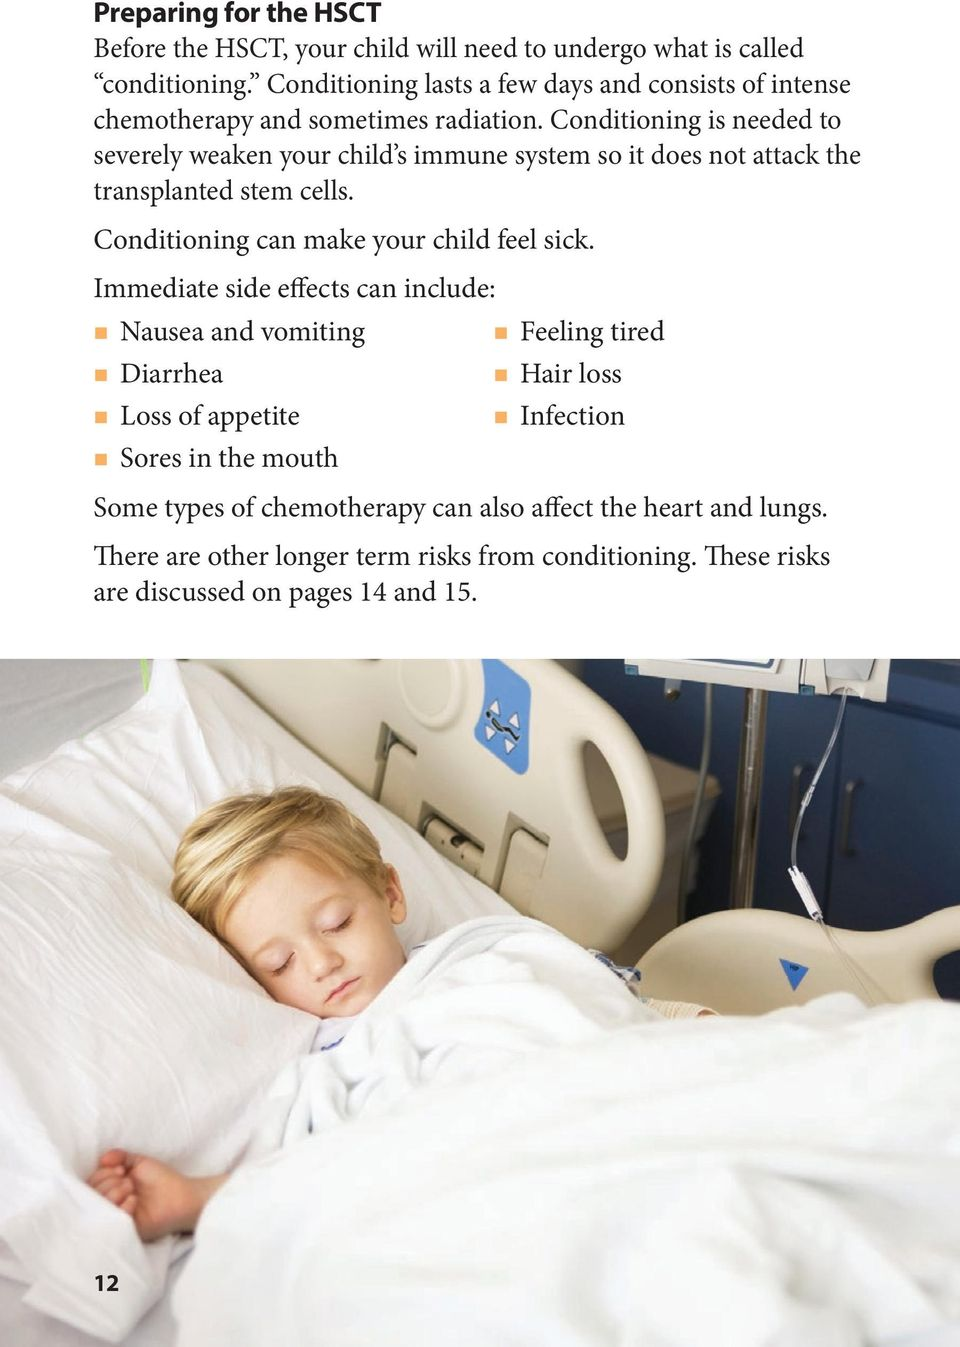 Conditioning is needed to severely weaken your child s immune system so it does not attack the transplanted stem cells. Conditioning can make your child feel sick.